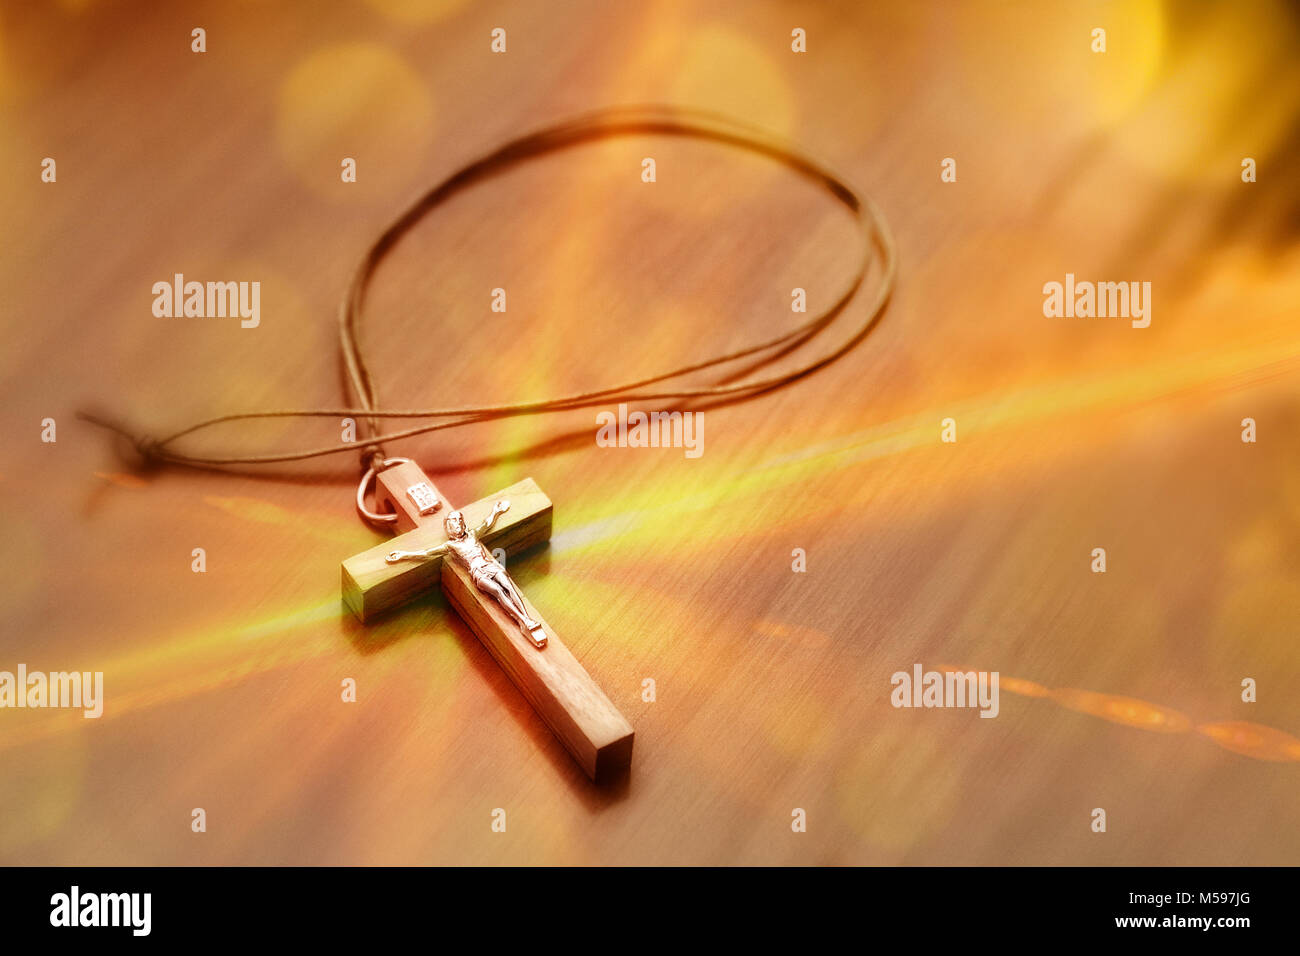 Closeup of crucifix on a wooden table with glitters coming out of it. Elevated view Stock Photo